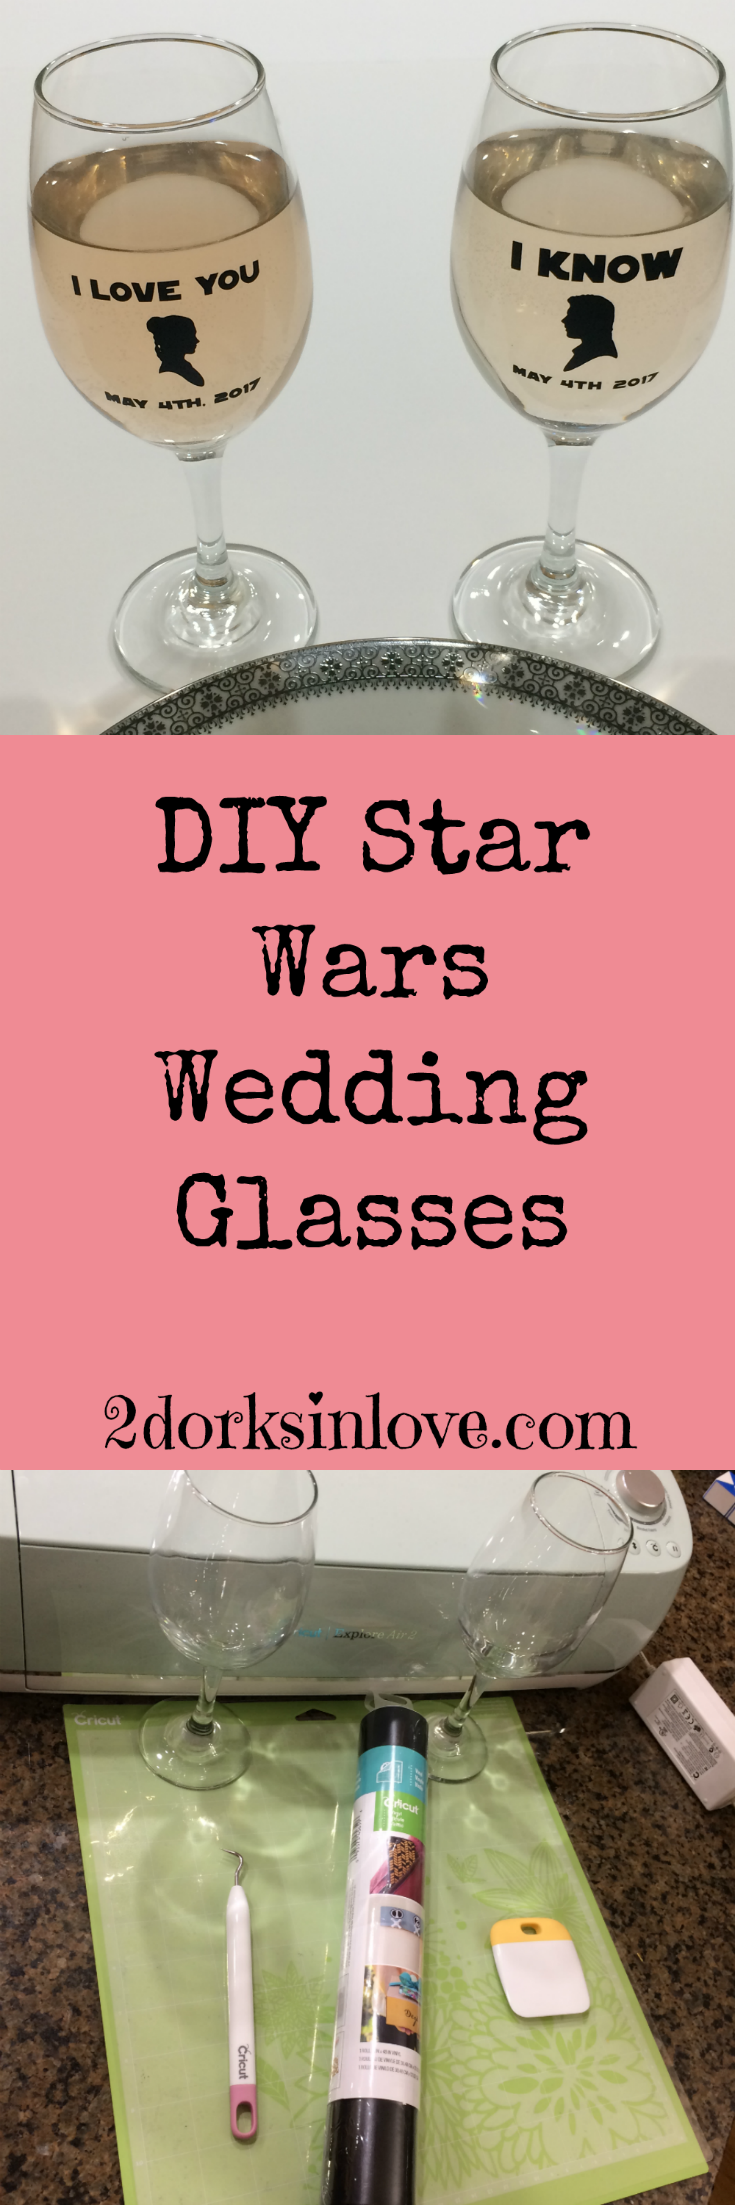 Make These Star Wars Wedding Glasses to Toast Your Geeky Love Story ...